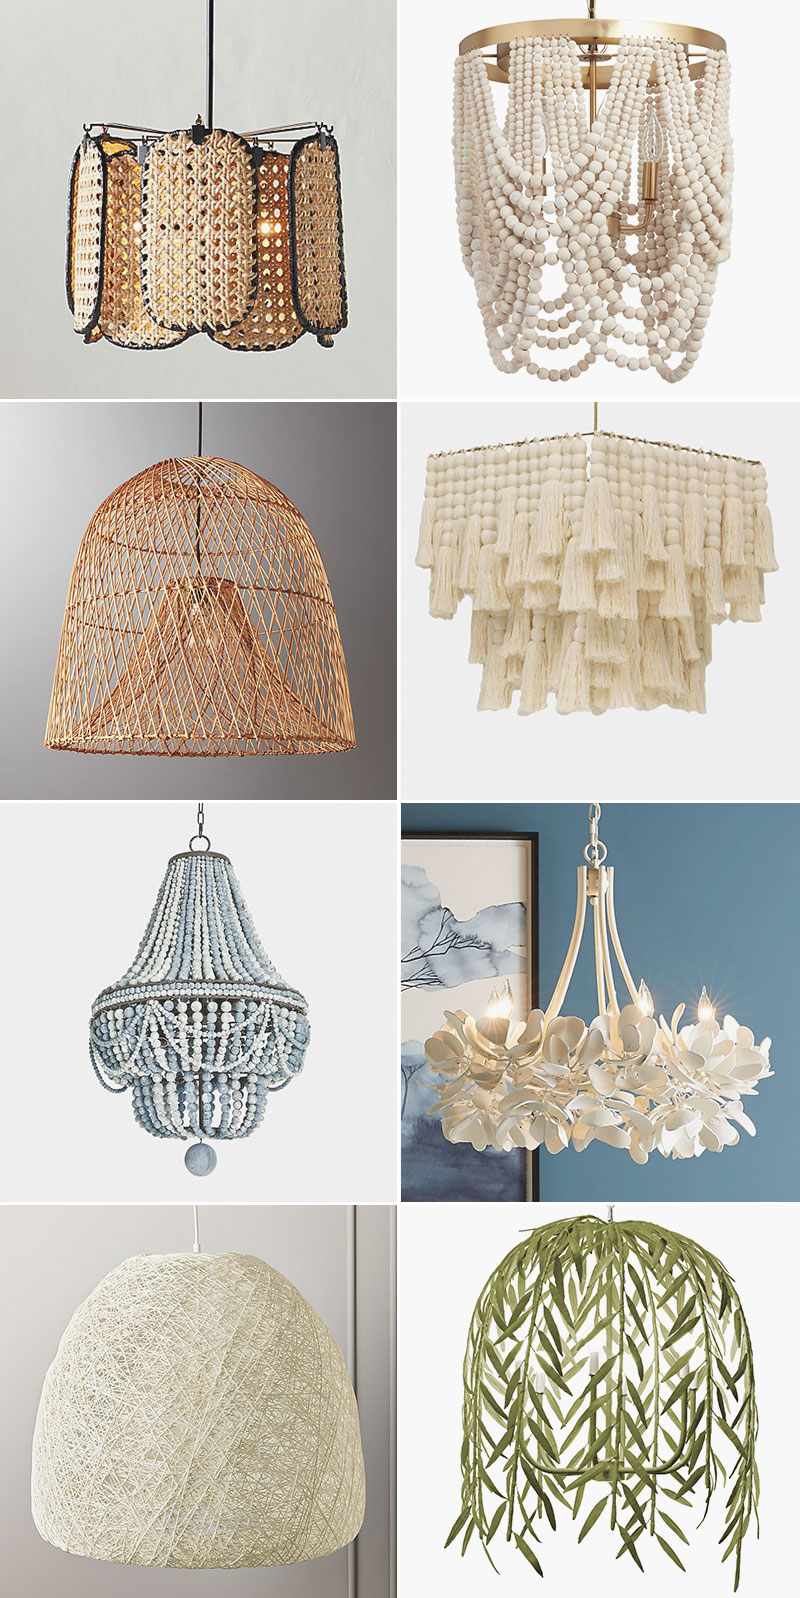 Looking for a Modern Chandelier? Check Out These Options in cut glass, crystal, brass, matte black, and unexpected materials for large dramatic chandeliers! #lighting #chandelier